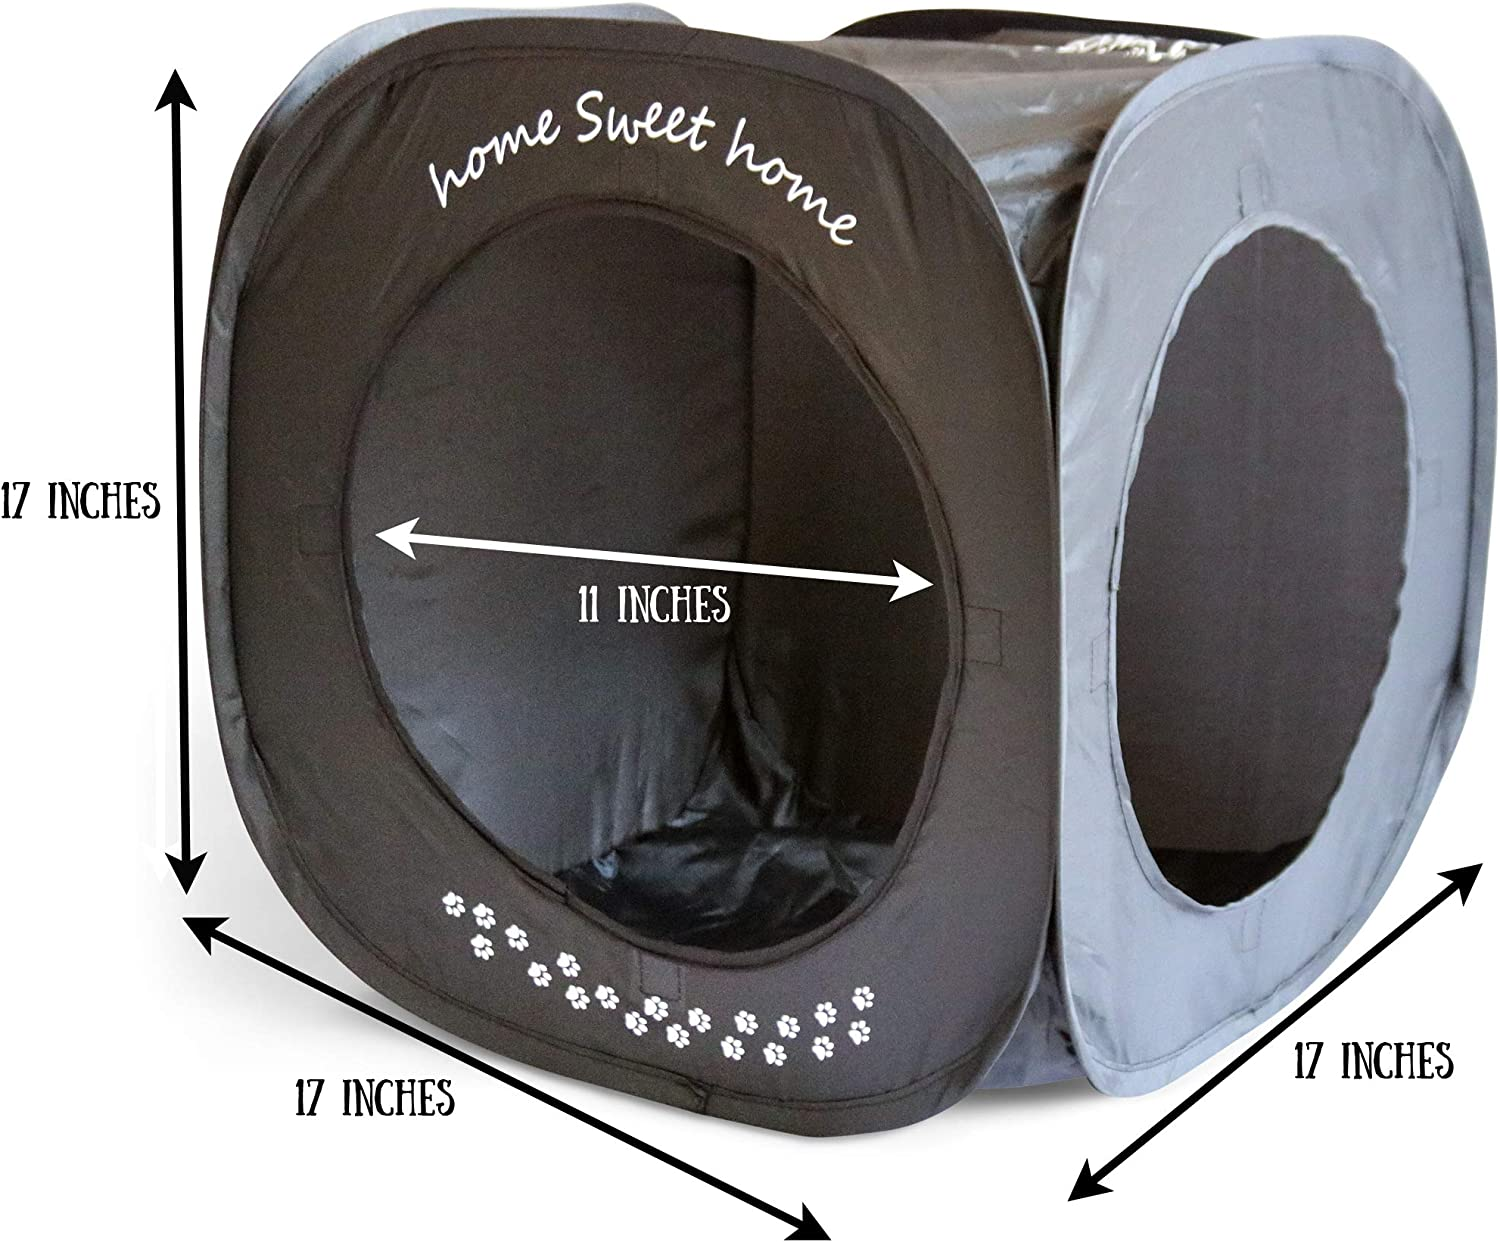 Feline Ruff Home Sweet Home Pop Up Cat Cube A Collapsible Indoor Cat House Covered Pet Bed Hideaway Cave For Dogs And Other Pets Too Pet Supplies